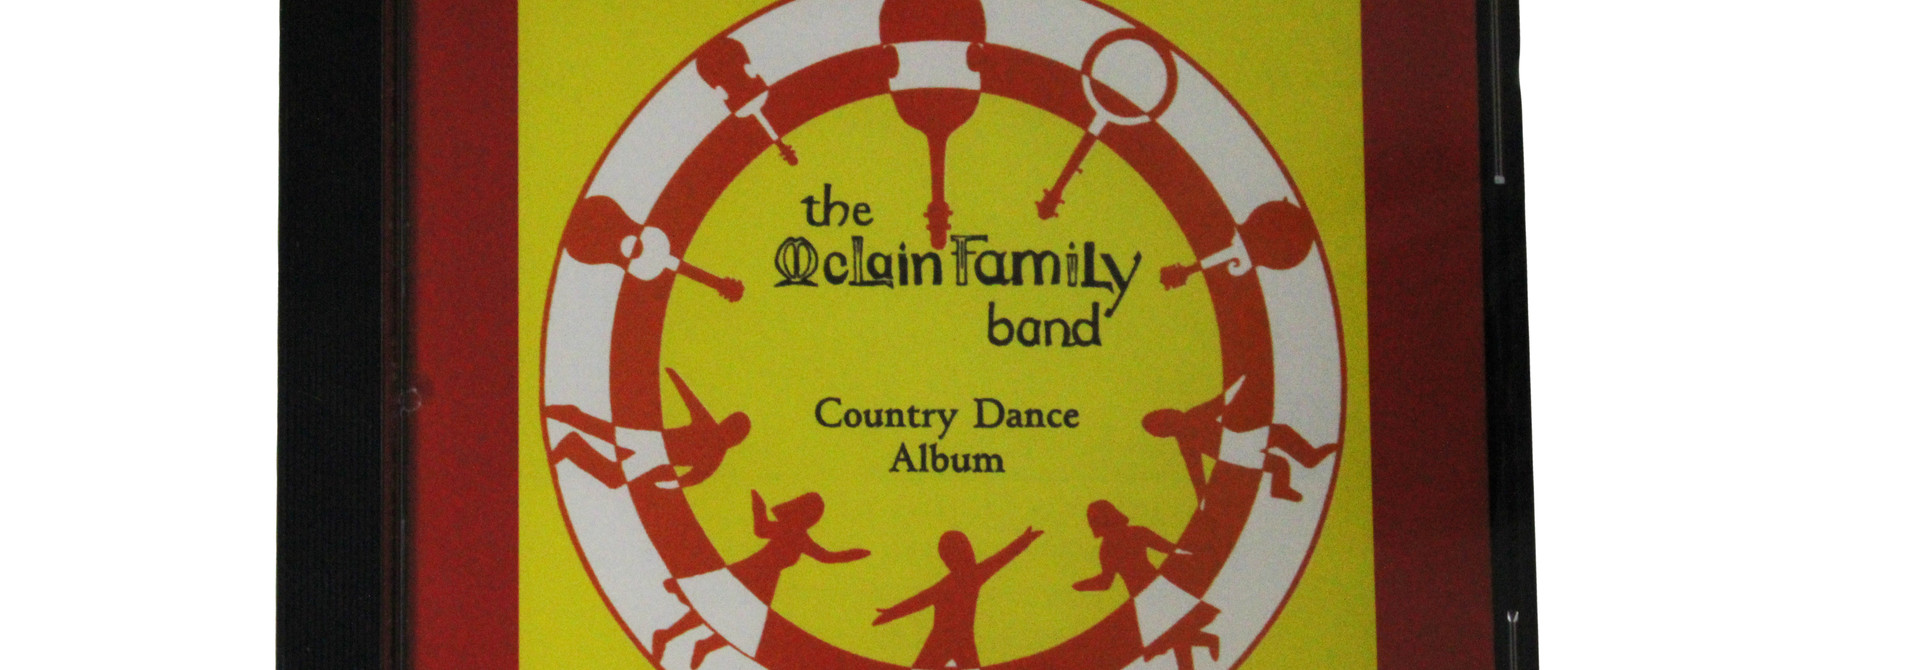 Country Dance Album by McLain Family Band